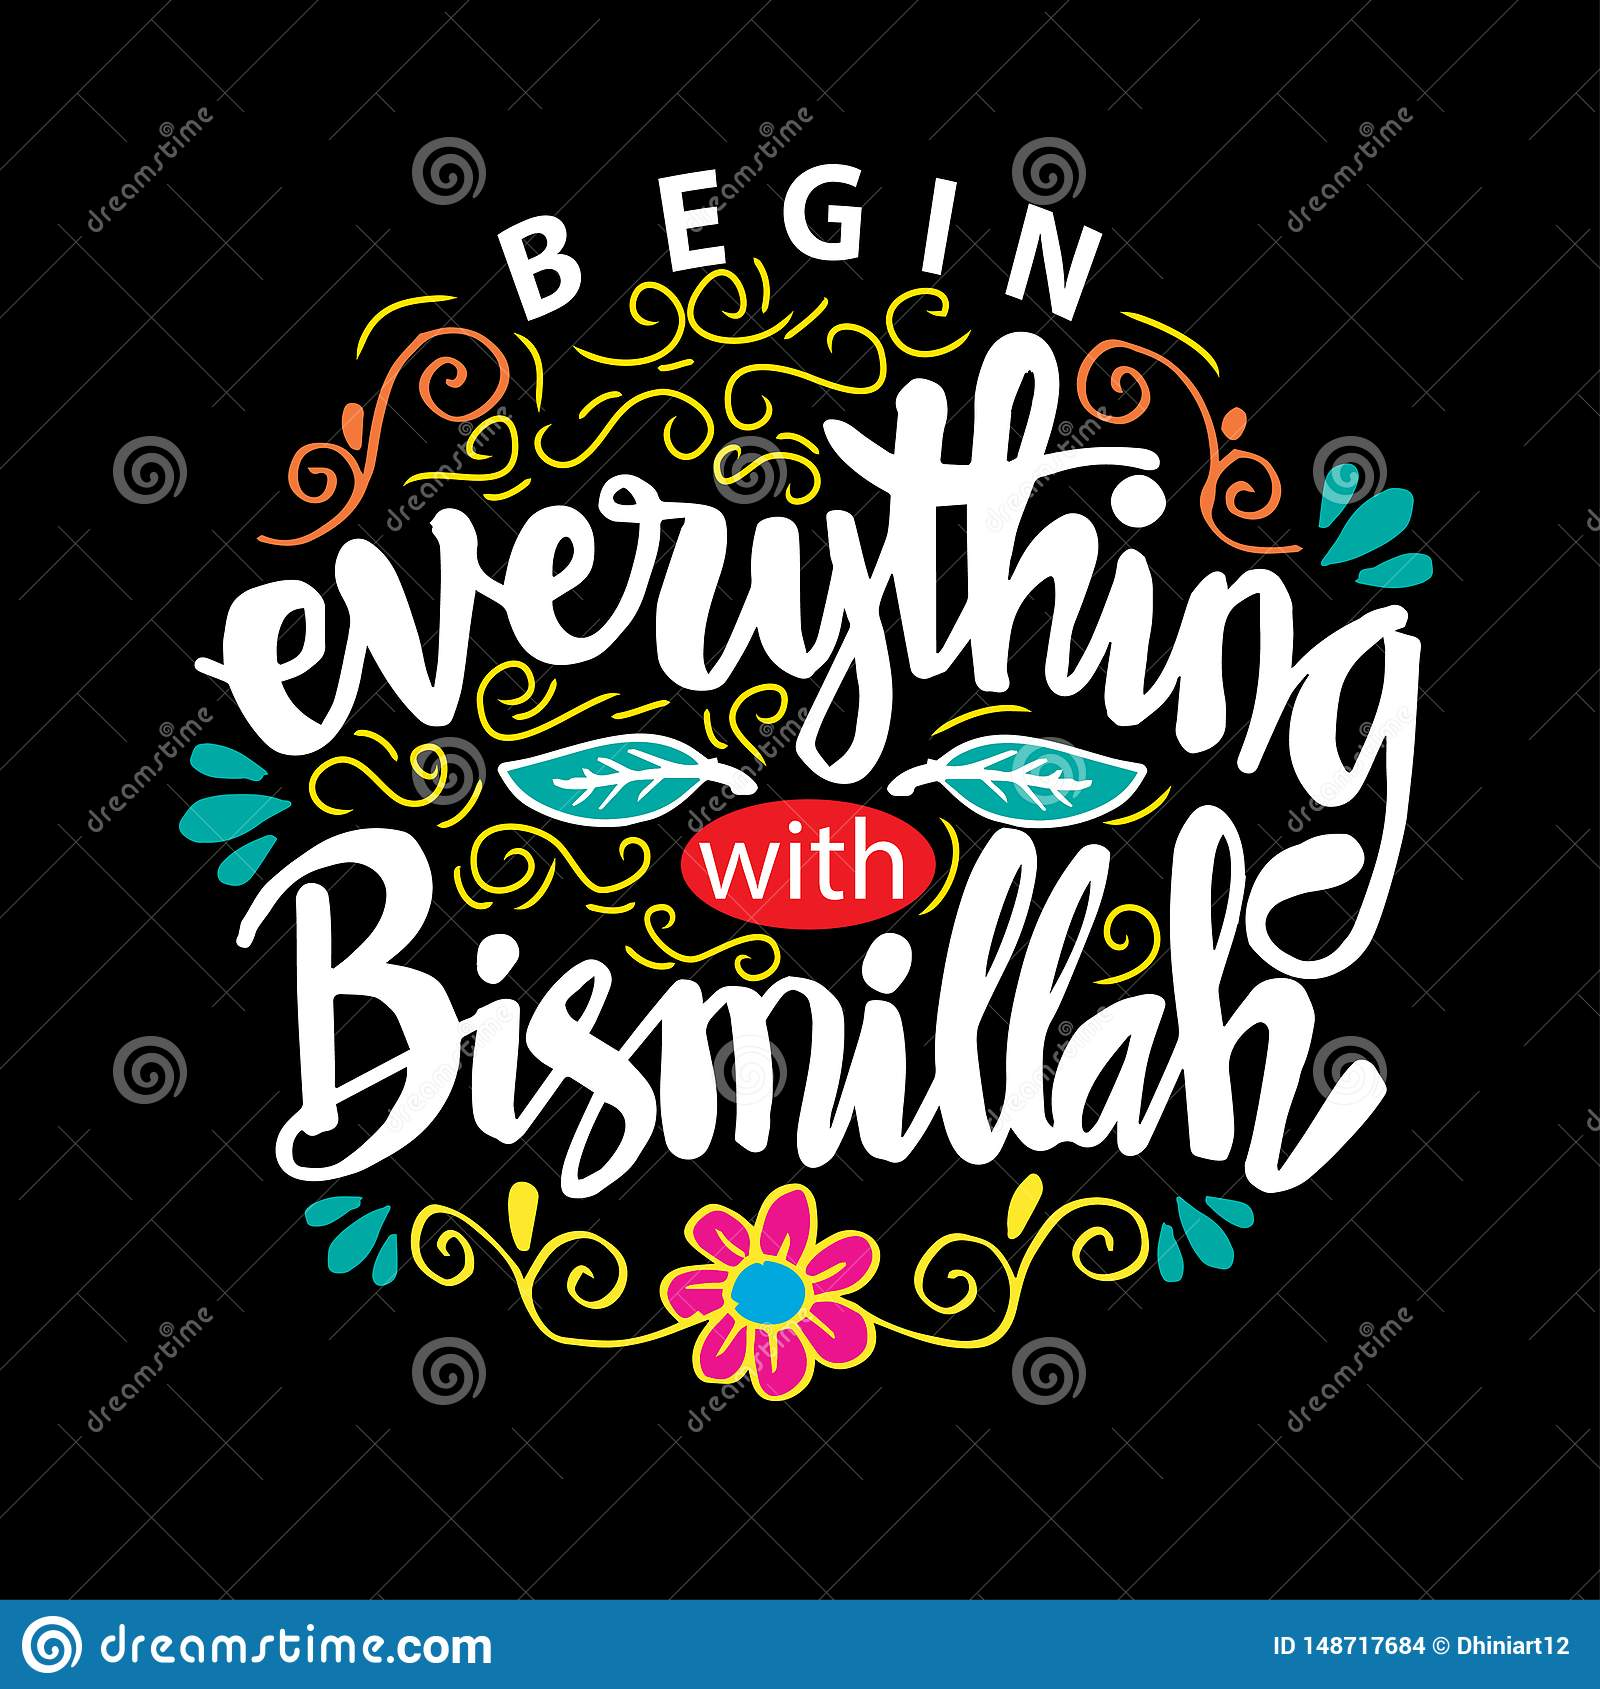 Begin everything with Bismillah.